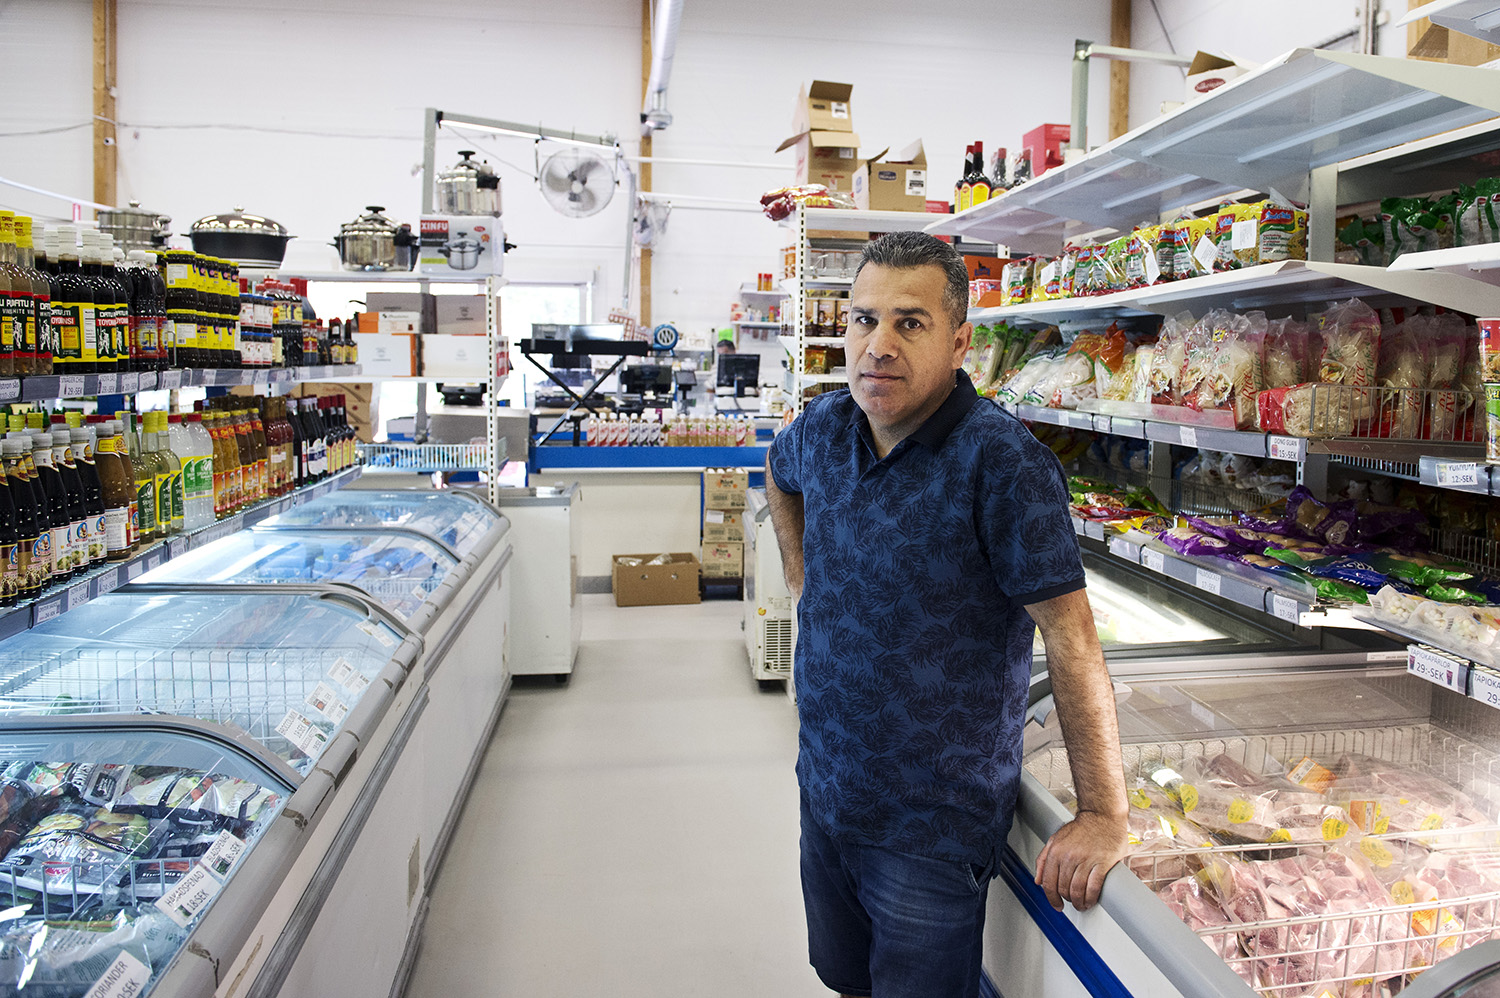 Mareike Timm | Photo Journalist - Goran Jabbar, owner of the grocery store Slemani Market in Svinesund near the border, has almost no customers since the border between Norway and Sweden was closed.